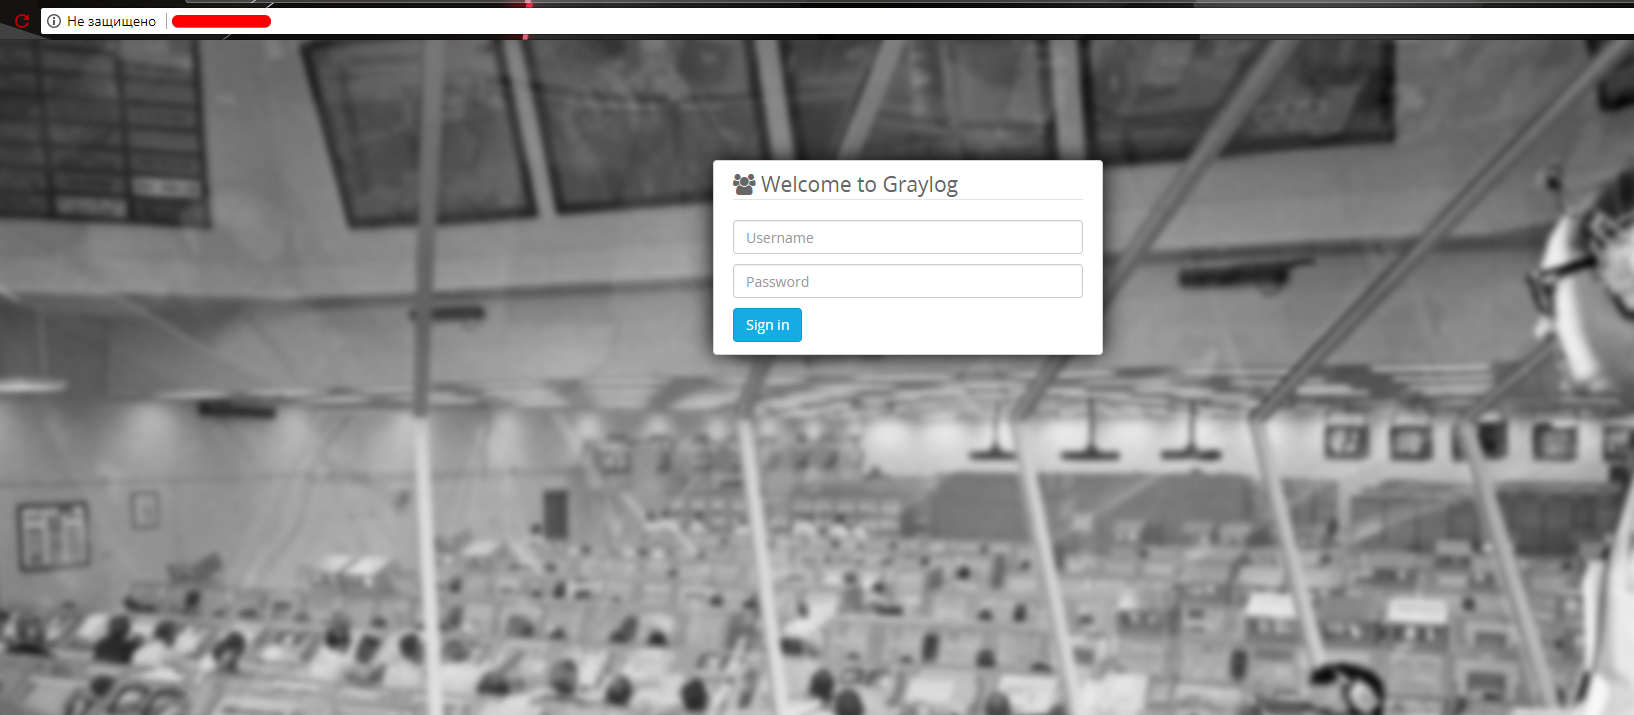 graylog2 login page